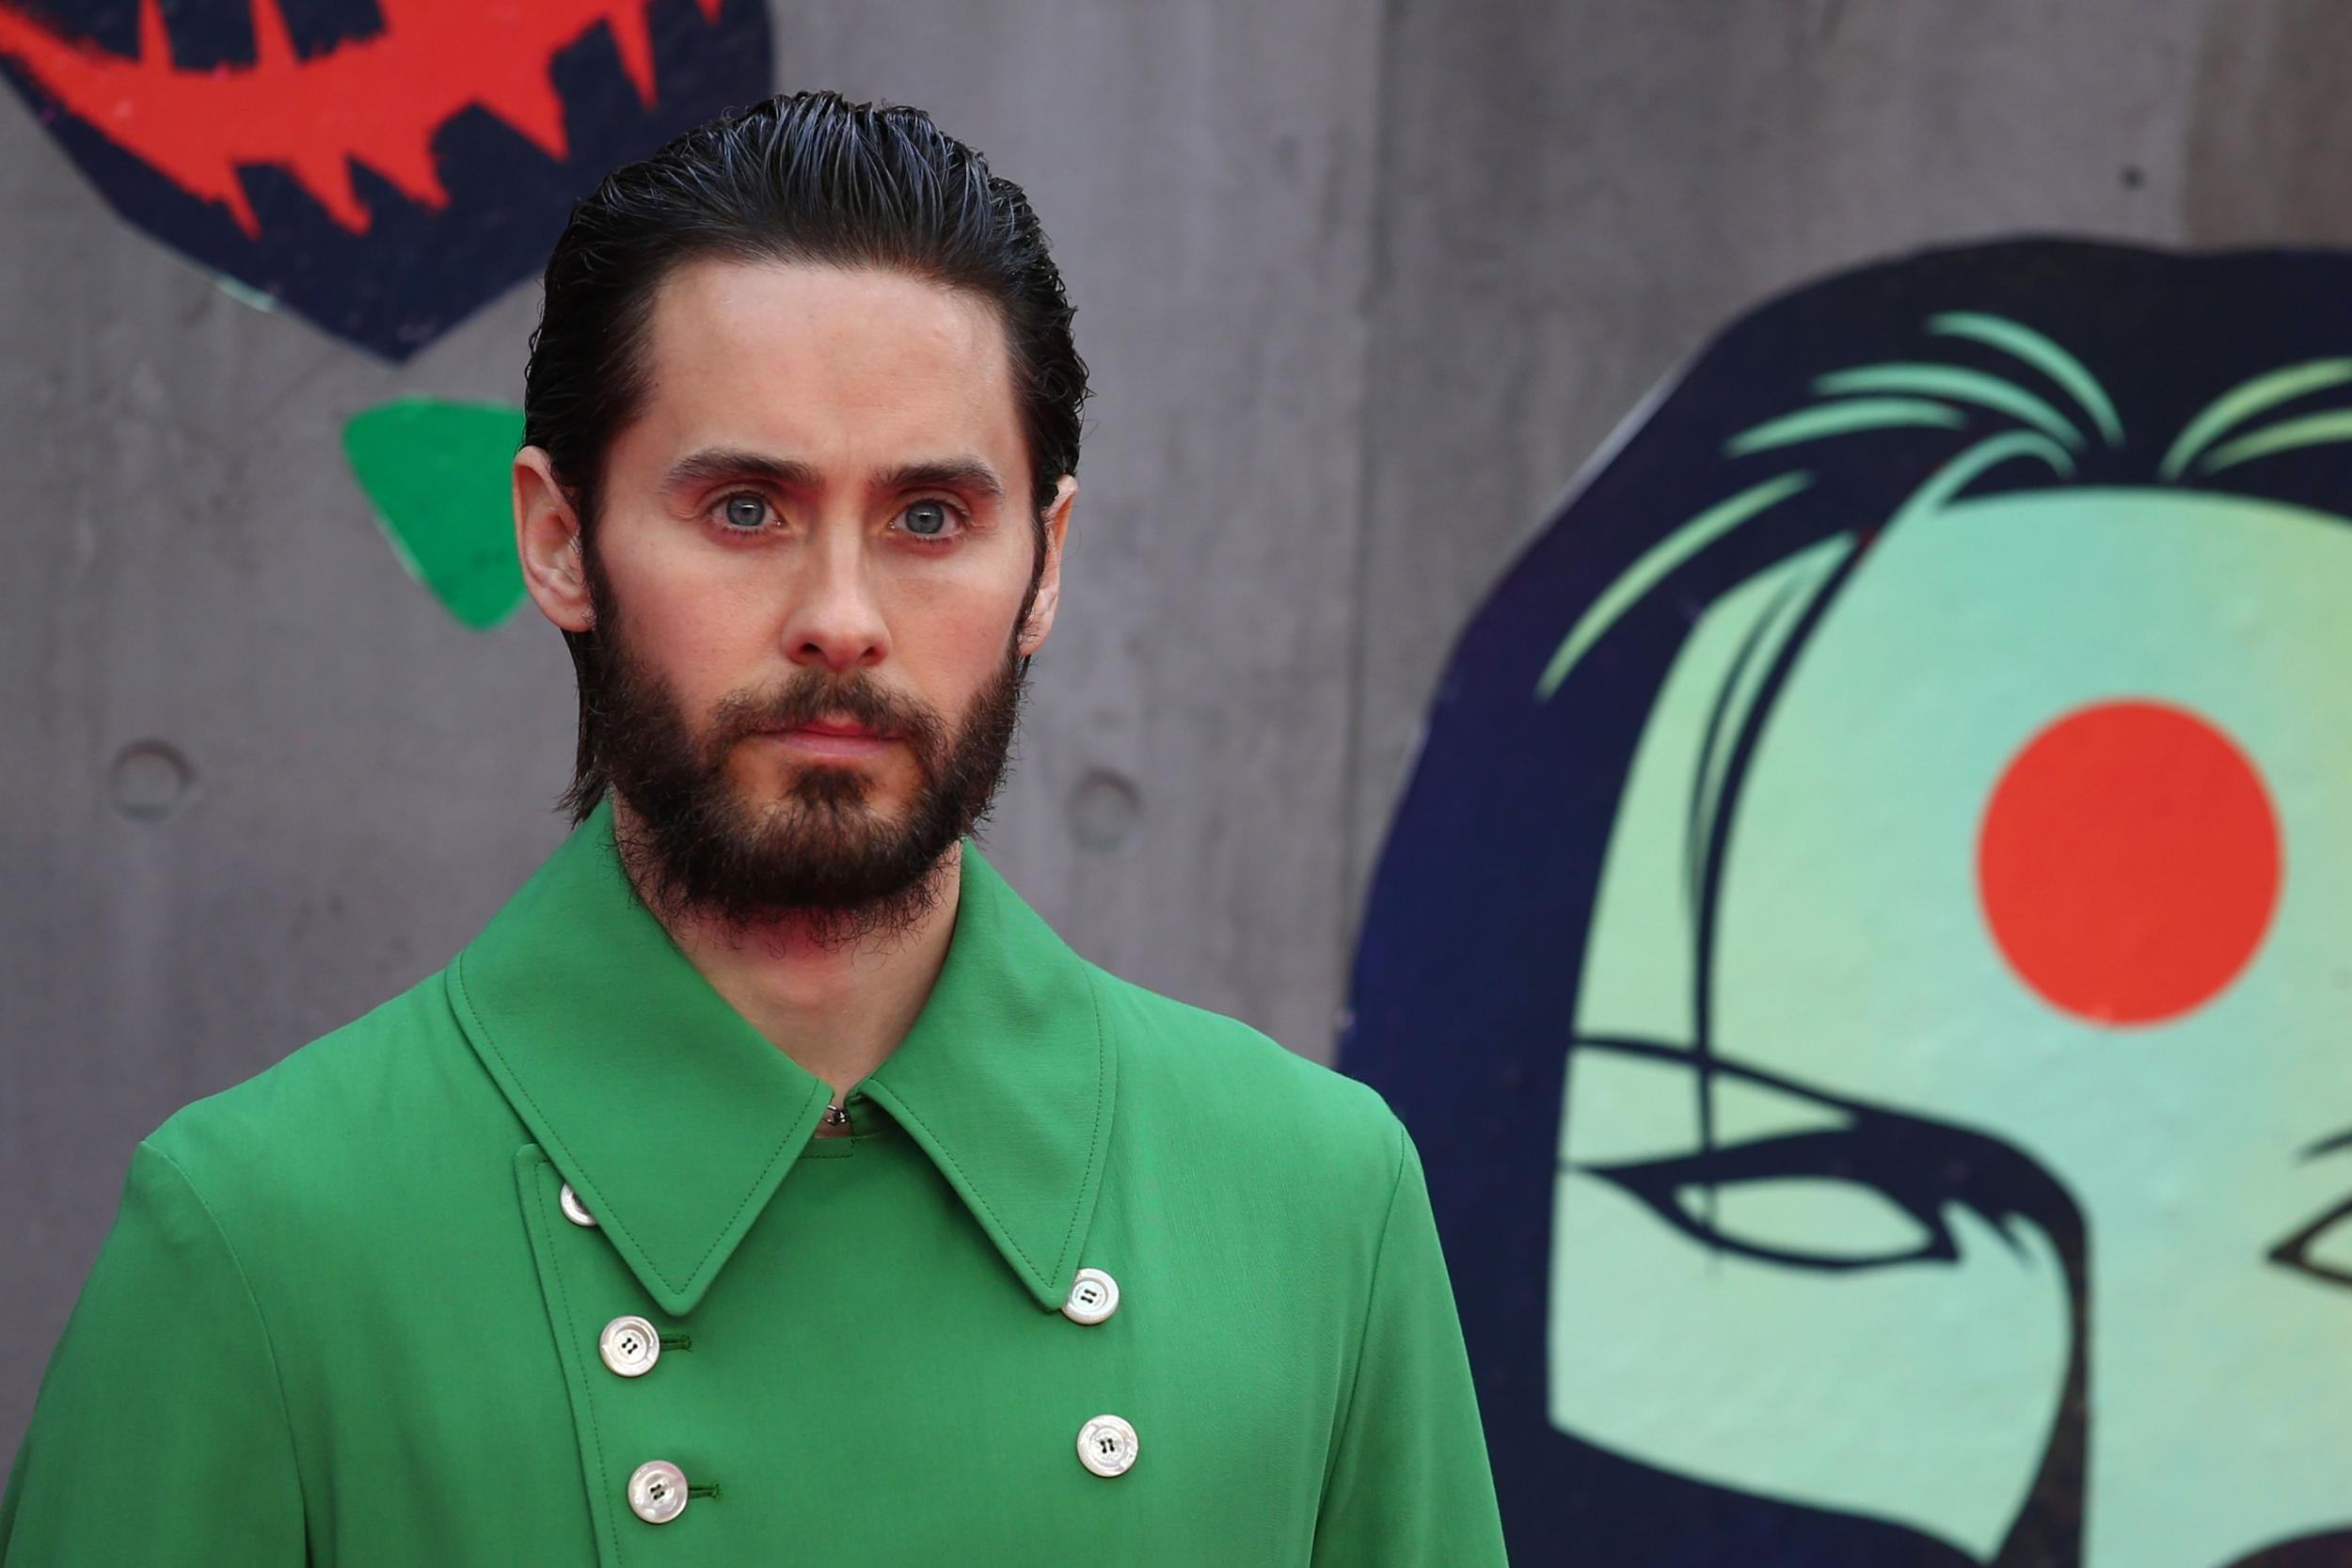 Blade Runner 2 Jared Leto Joins Ryan Gosling And Harrison